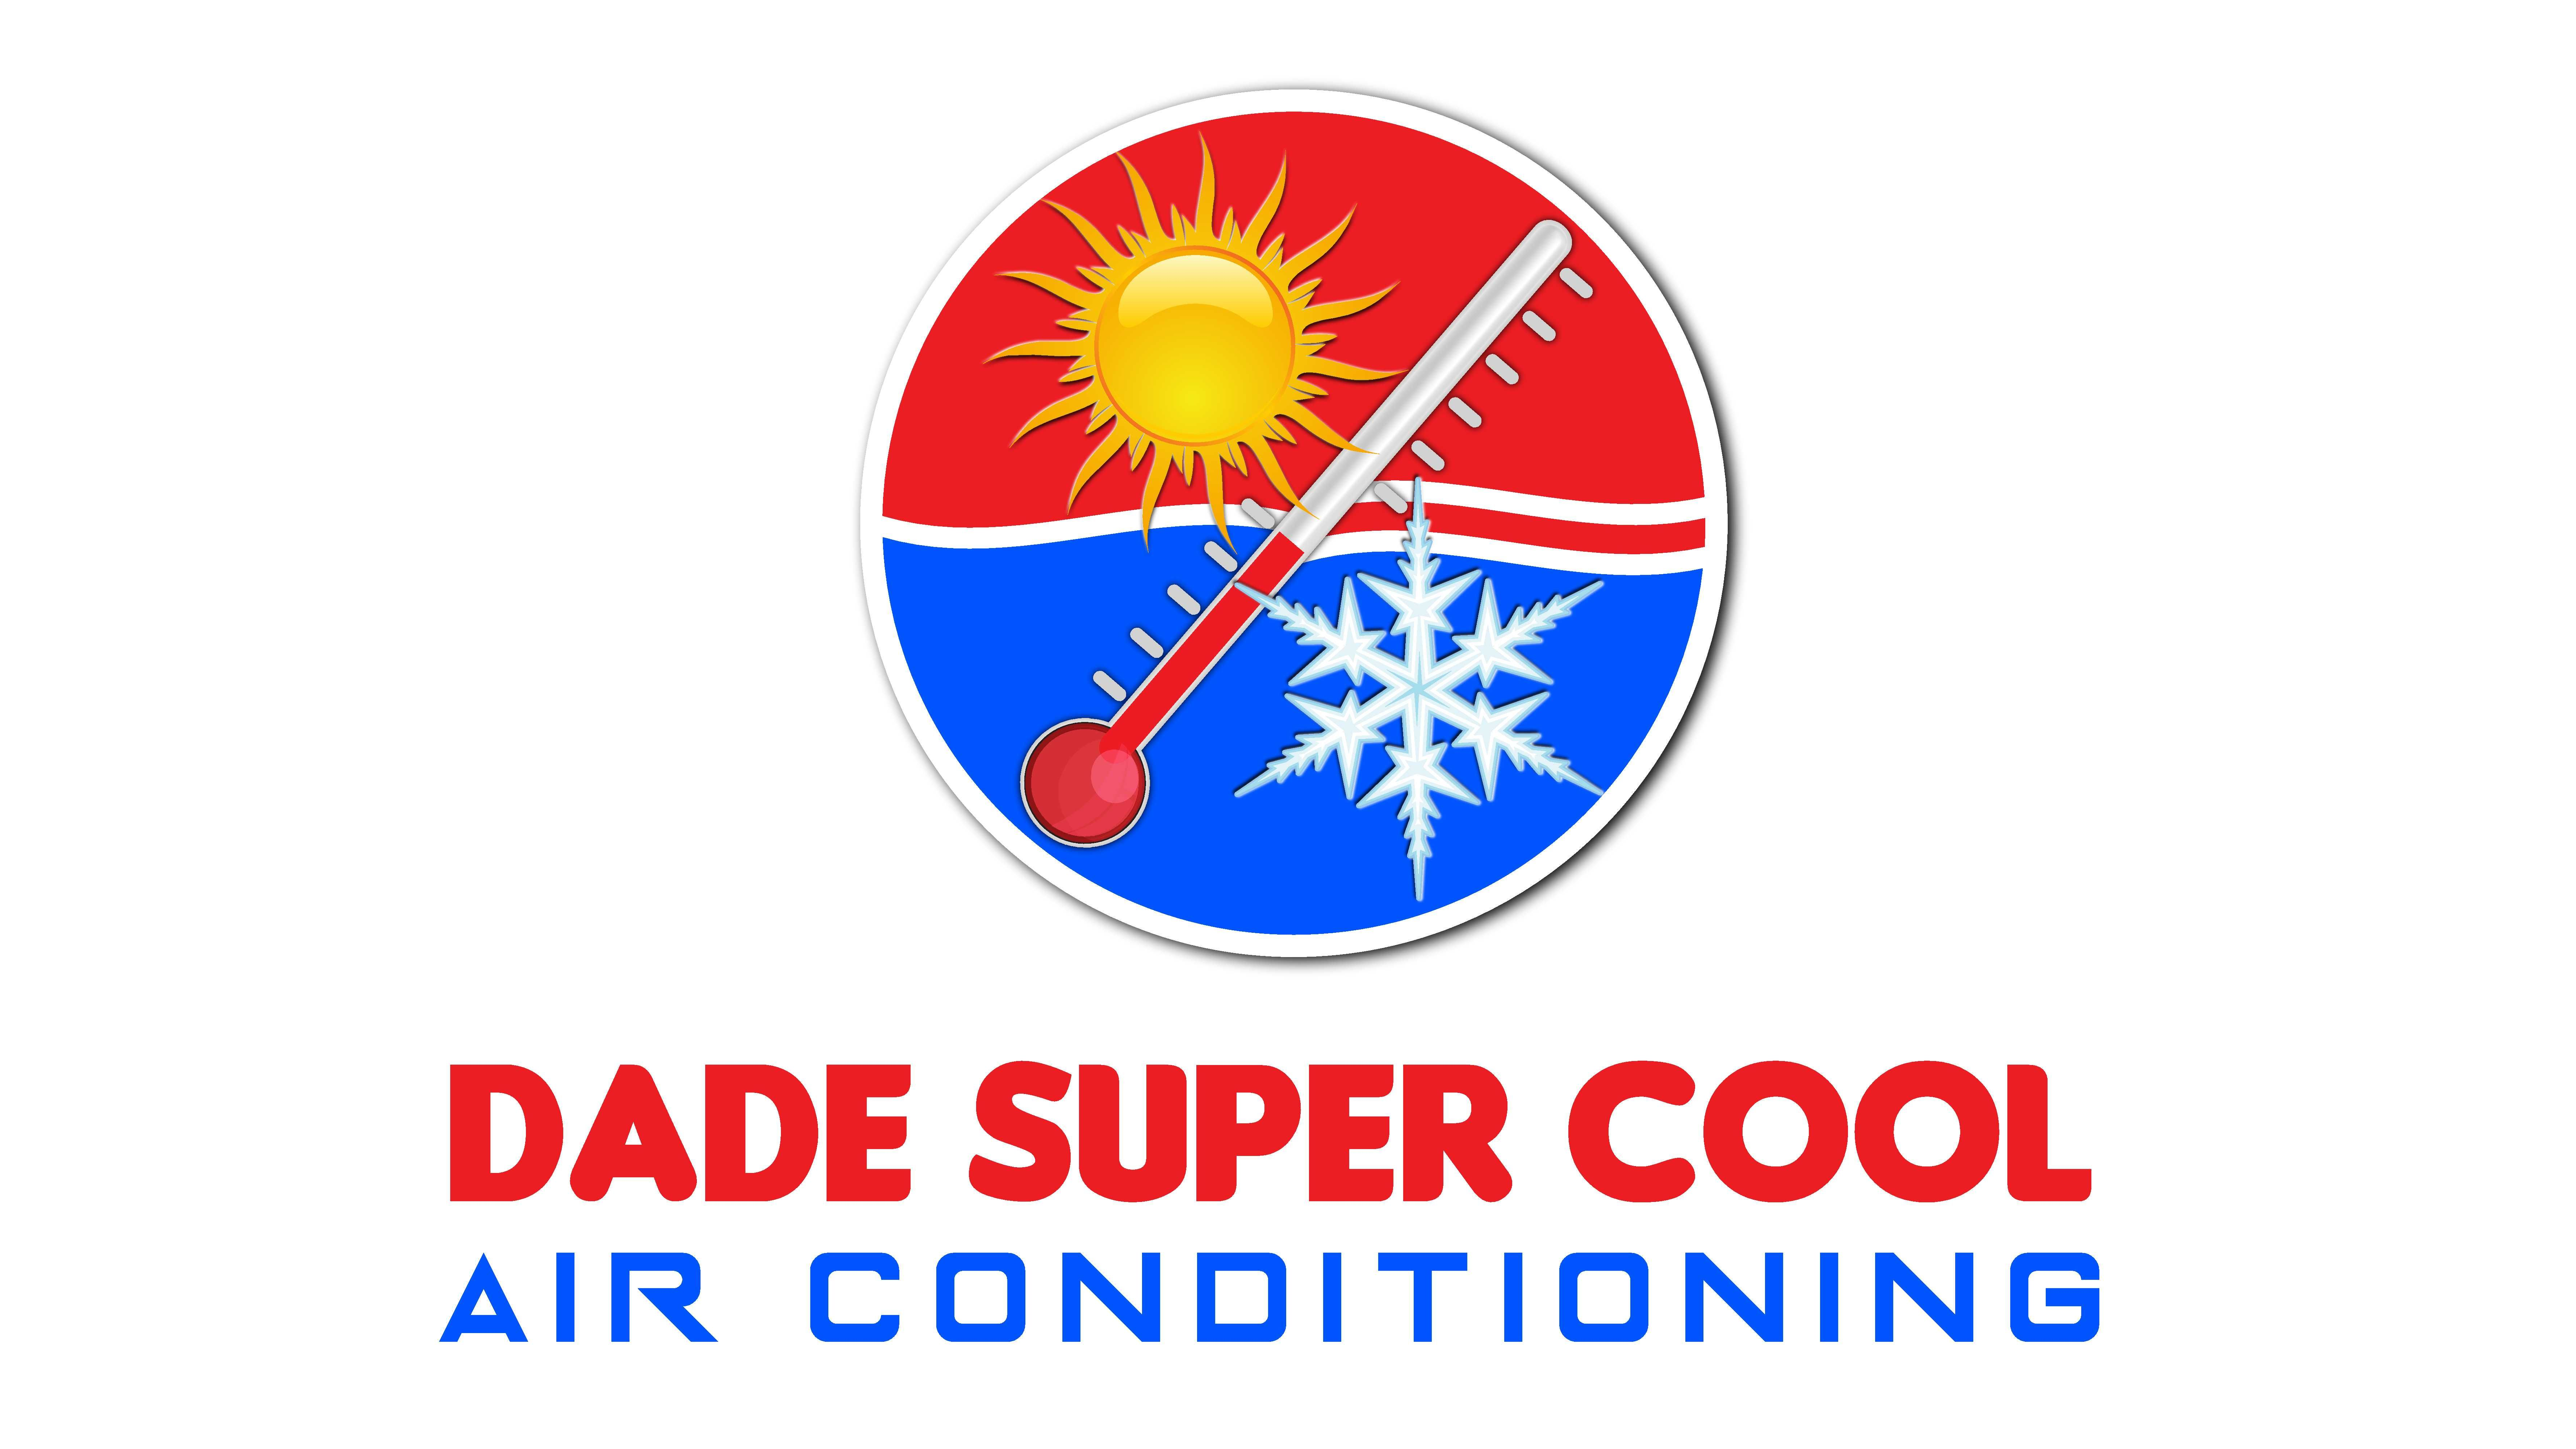 Air Conditioning Service And Installation Company Call Us At 305